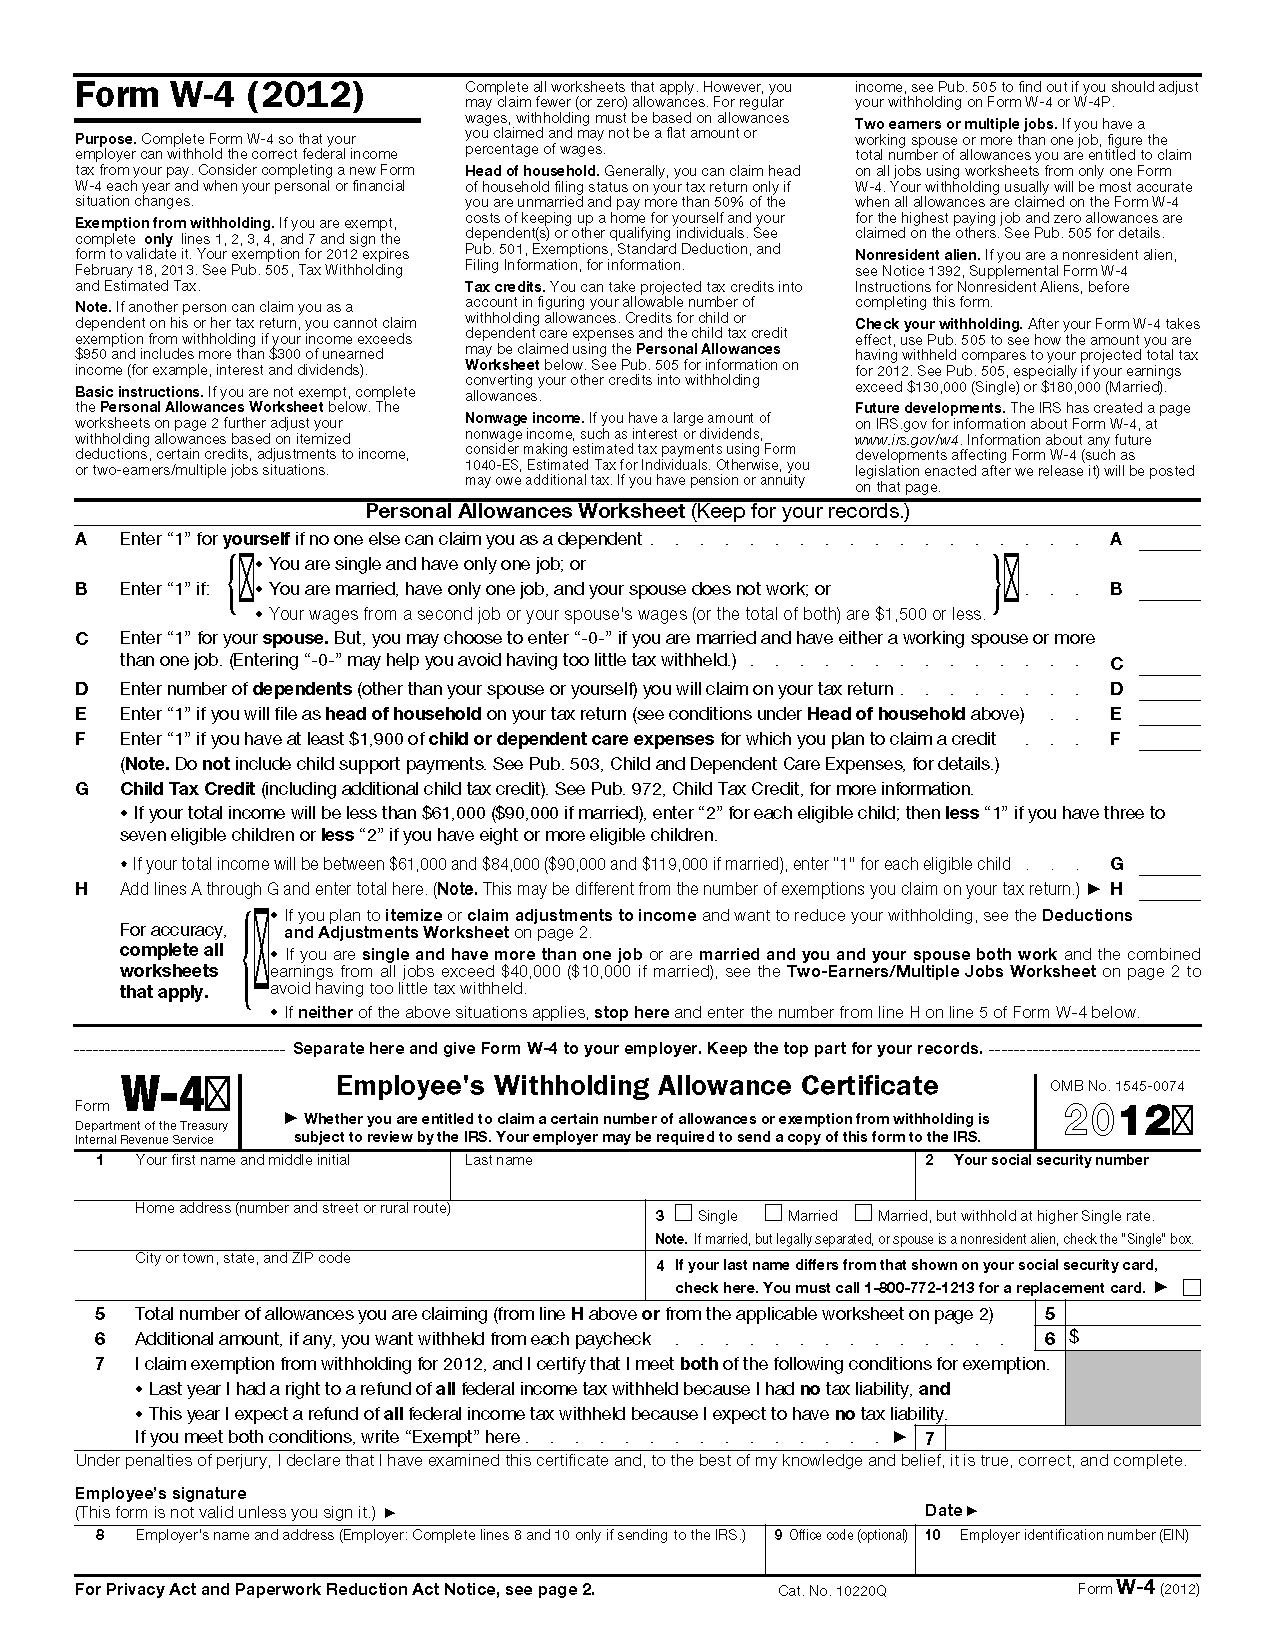 Worksheets Personal Allowance Worksheet form w 4 employees withholding allowance certificate